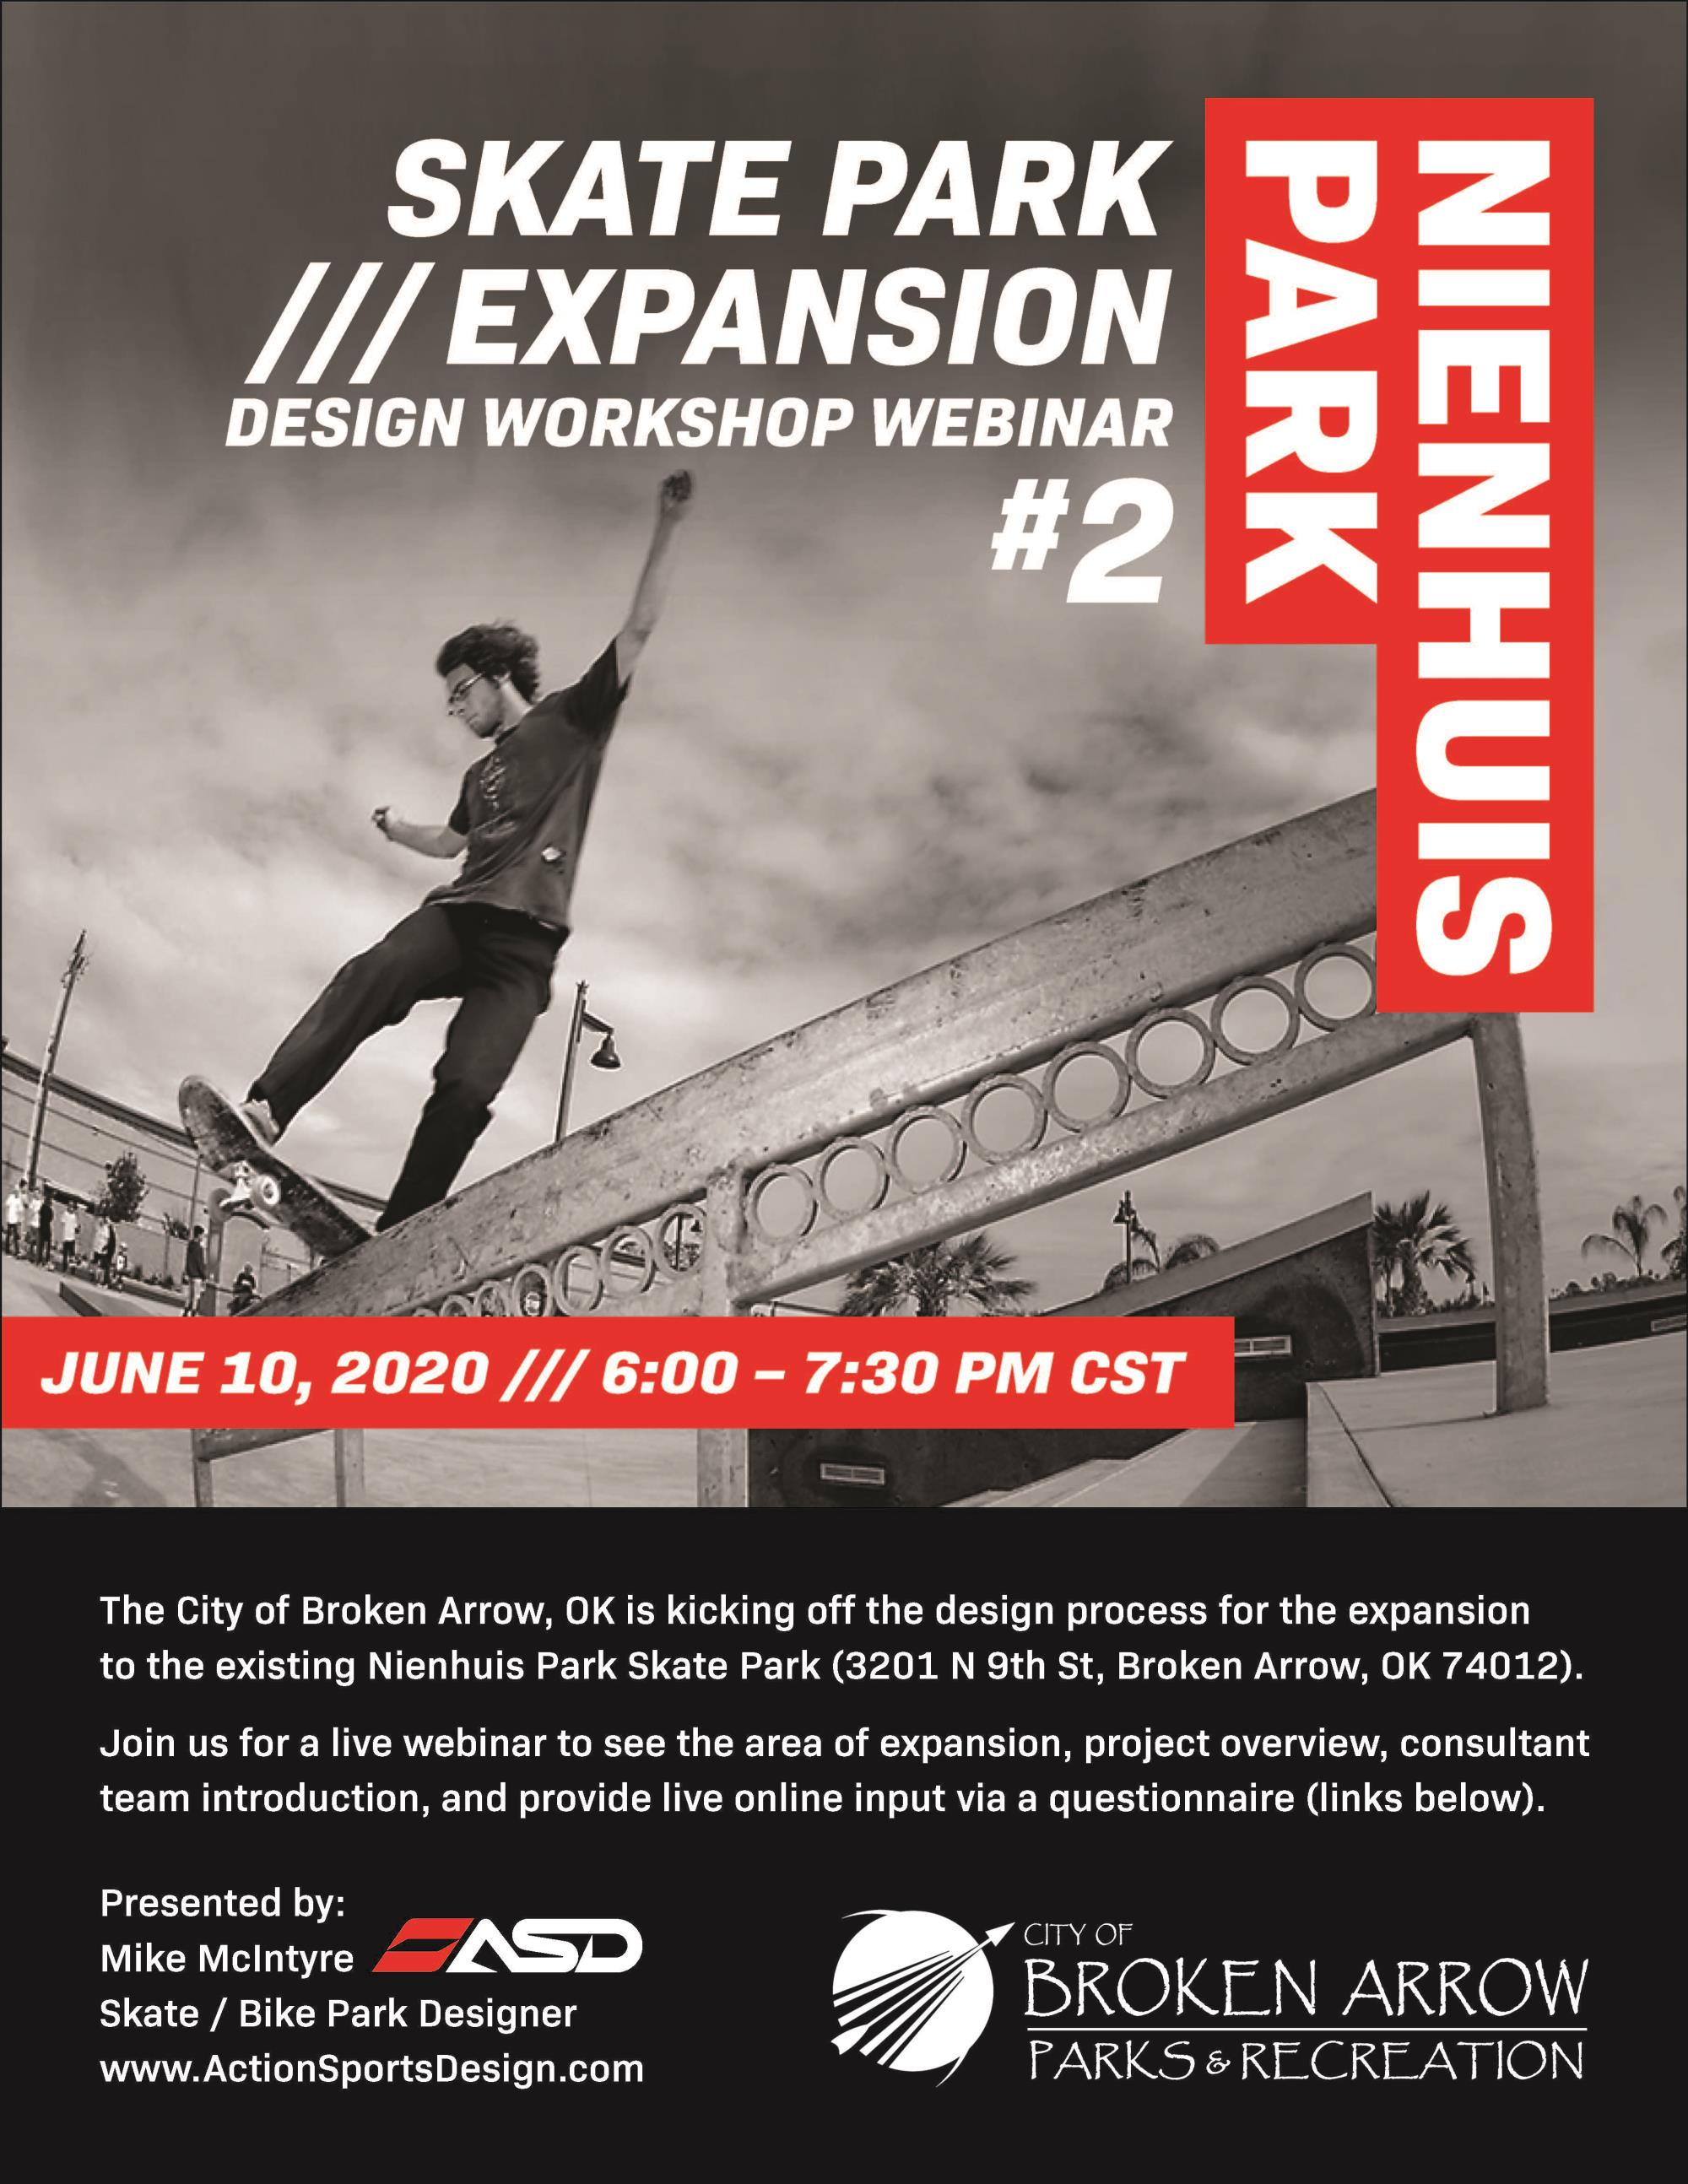 Nienhuis Park Skate Park Expansion Design Workshop Webinar #2